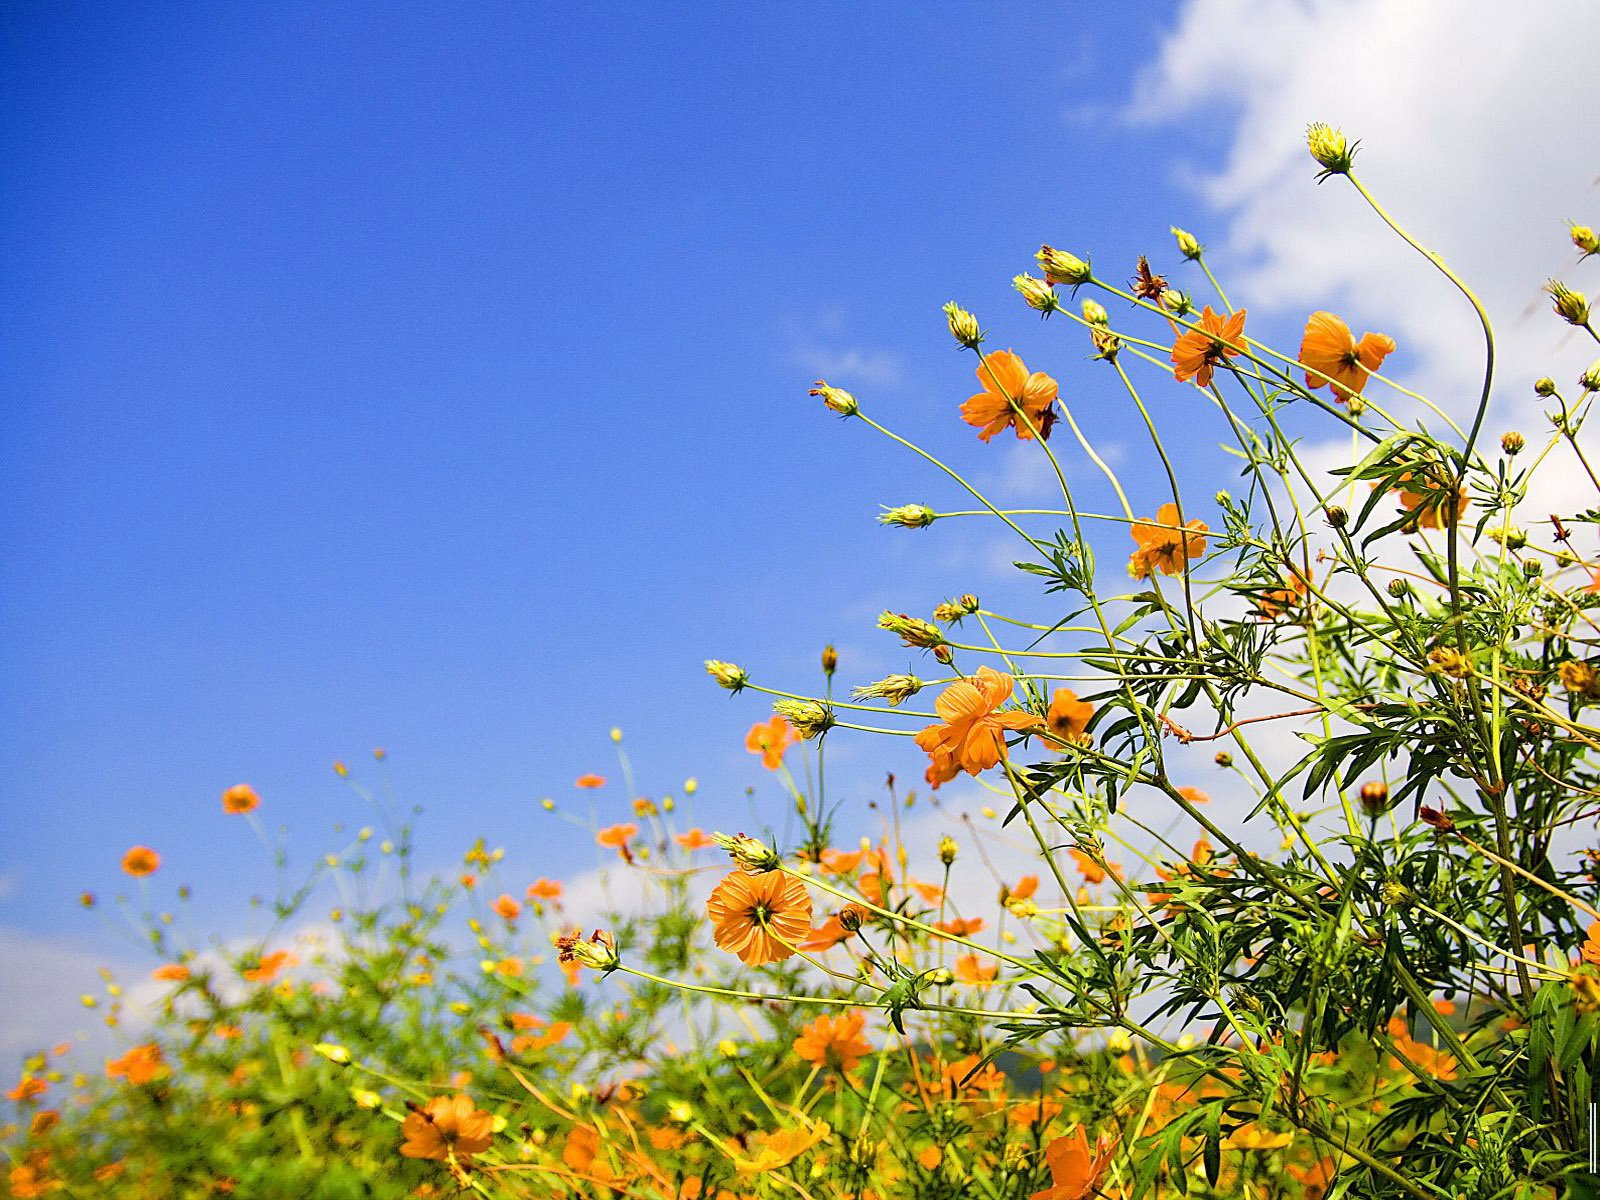 best-spring-picture-hd-image-wallpaper-wp424082-1